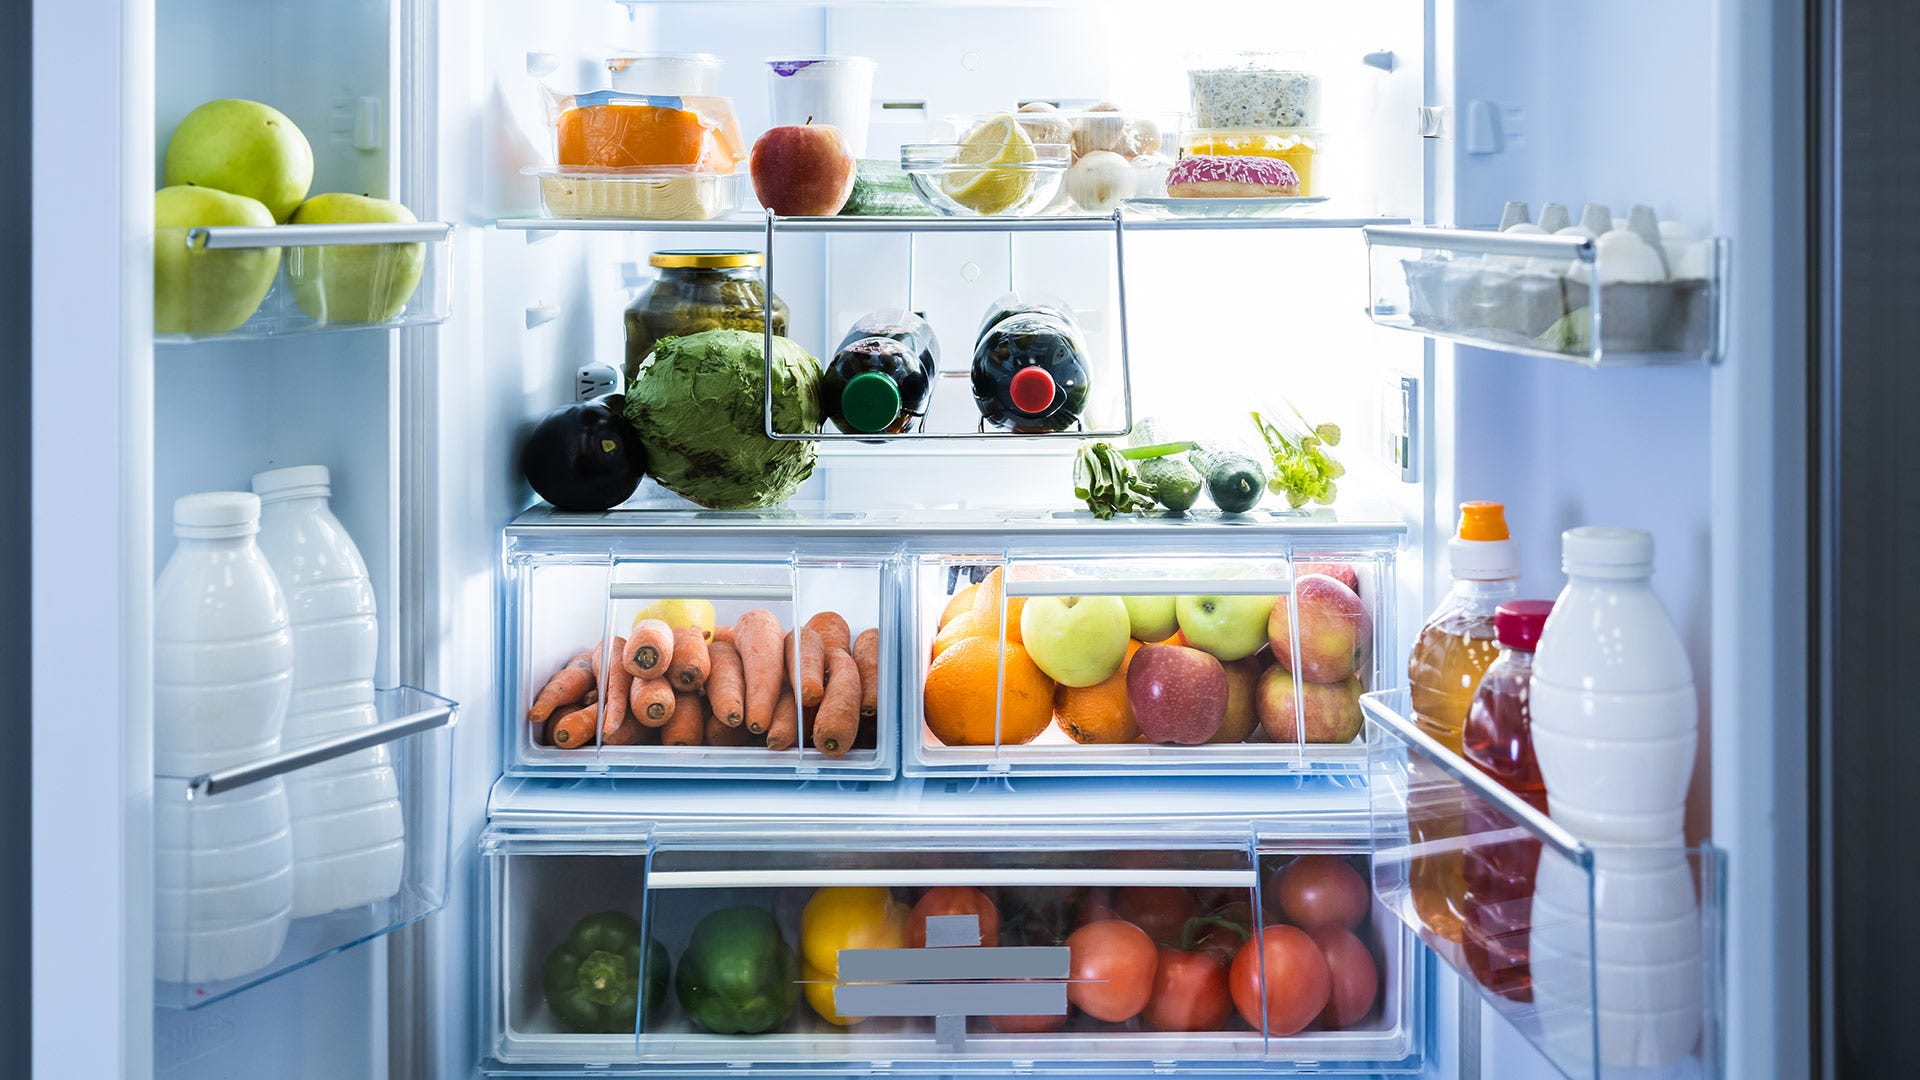 An open refrigerator with food inside.